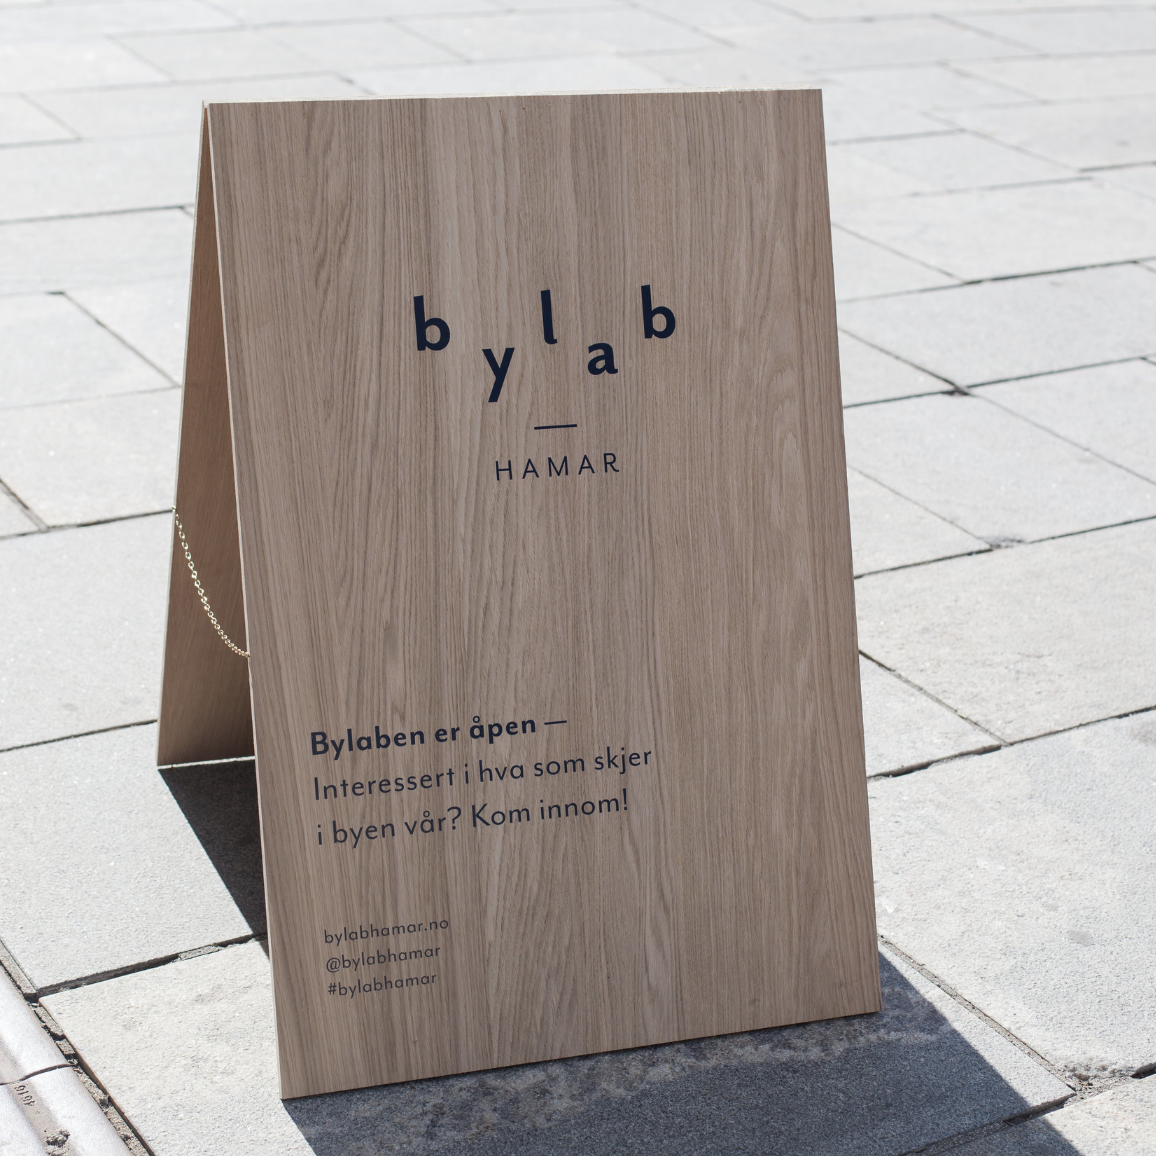 BYLAB HAMAR   A citylab for the municipality of Hamar. Functioning as an involvement and communication platform for development projects in the region, also as a part of the activation strategy of the city center of Hamar.  Advisory — Einar Kleppe Holthe  bylabhamar.no